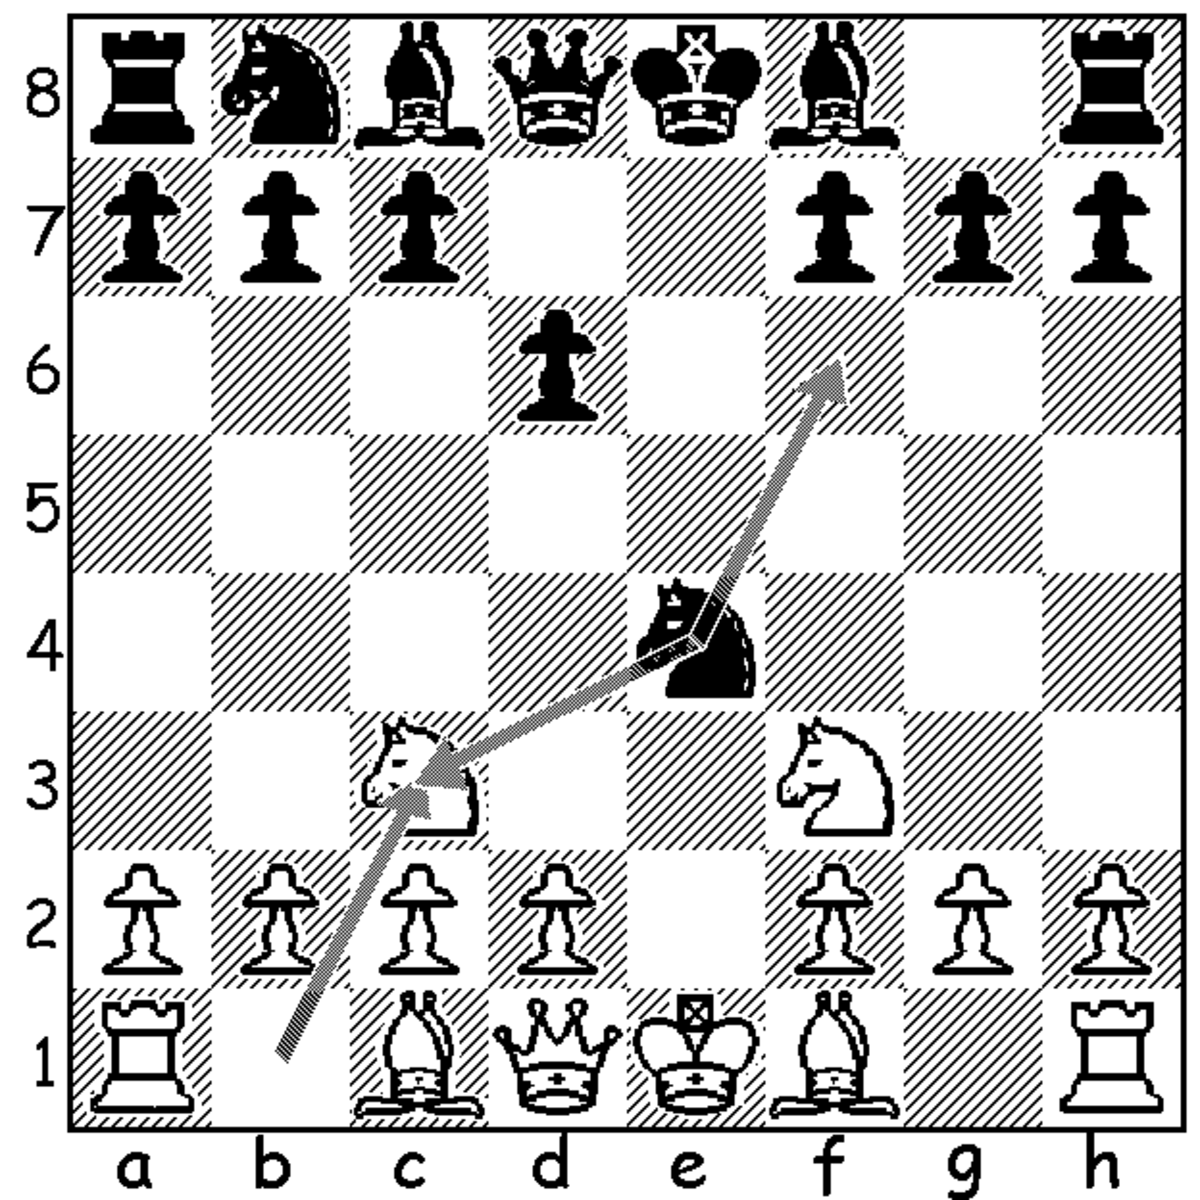 Position of the Nimzovich Attack variation in Petrov's Defense after the moves 1.e4 e5, 2.Nf3 Nf6, 3.Nxe5 d6, 4.Nf3 Nxe4, 5.Nc3. The move 5.Nc3 is shown by the lower arrow, and black's only two reasonable moves (5...Nxc3 and 5...Nf6) are shown also.